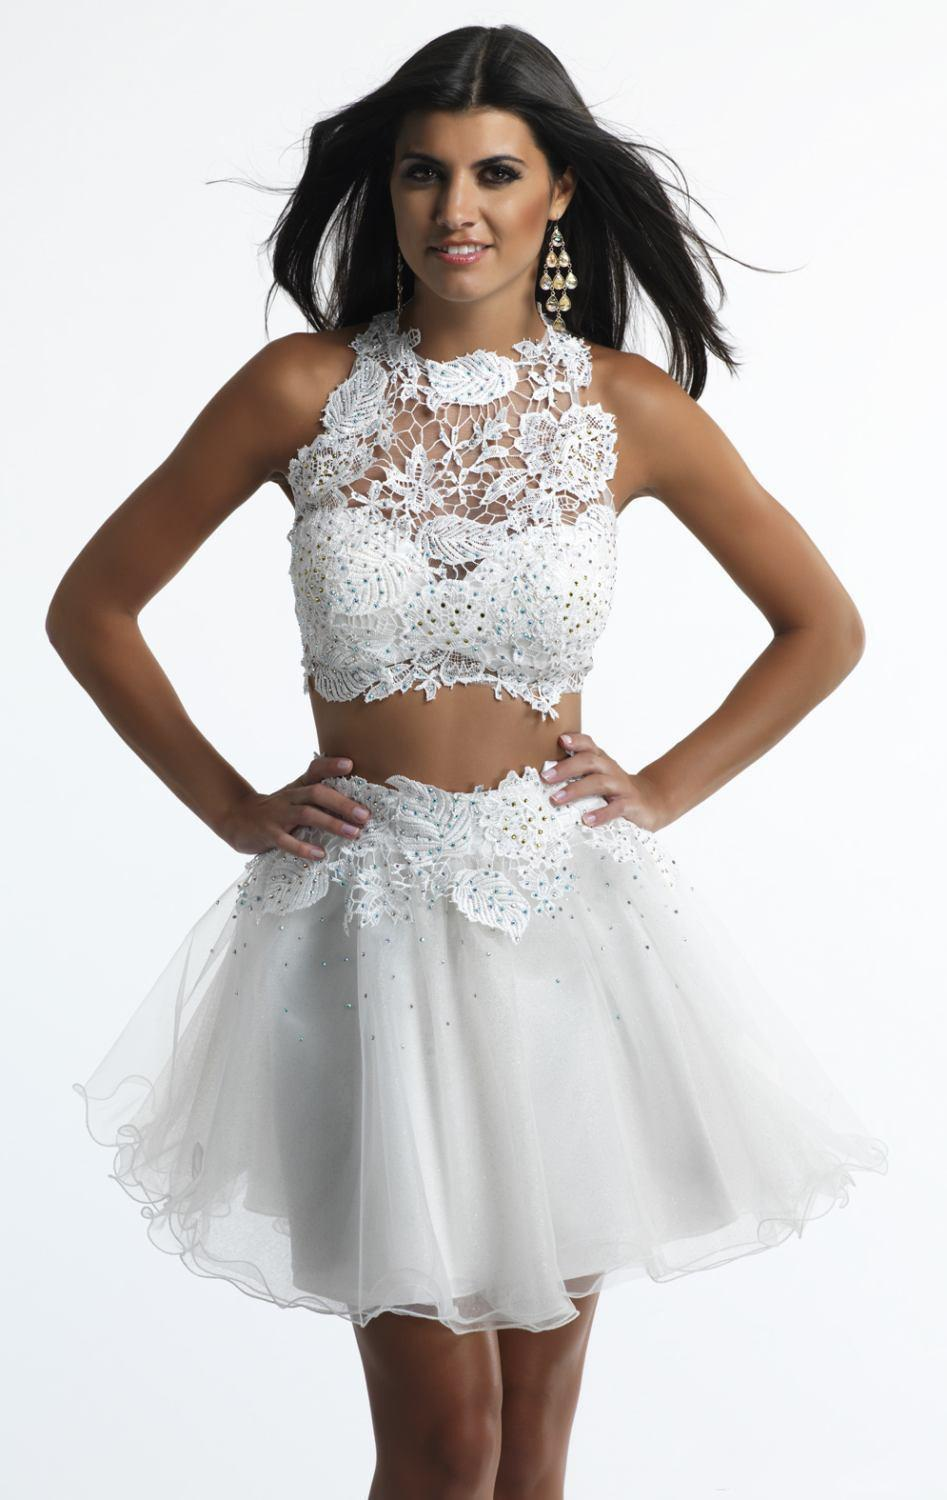 cfa3fced35bd7 2015 Two Piece Short White Homecoming Dresses Appliques Detachable Sexy  Sweet 16 8th Grad Prom Dresses